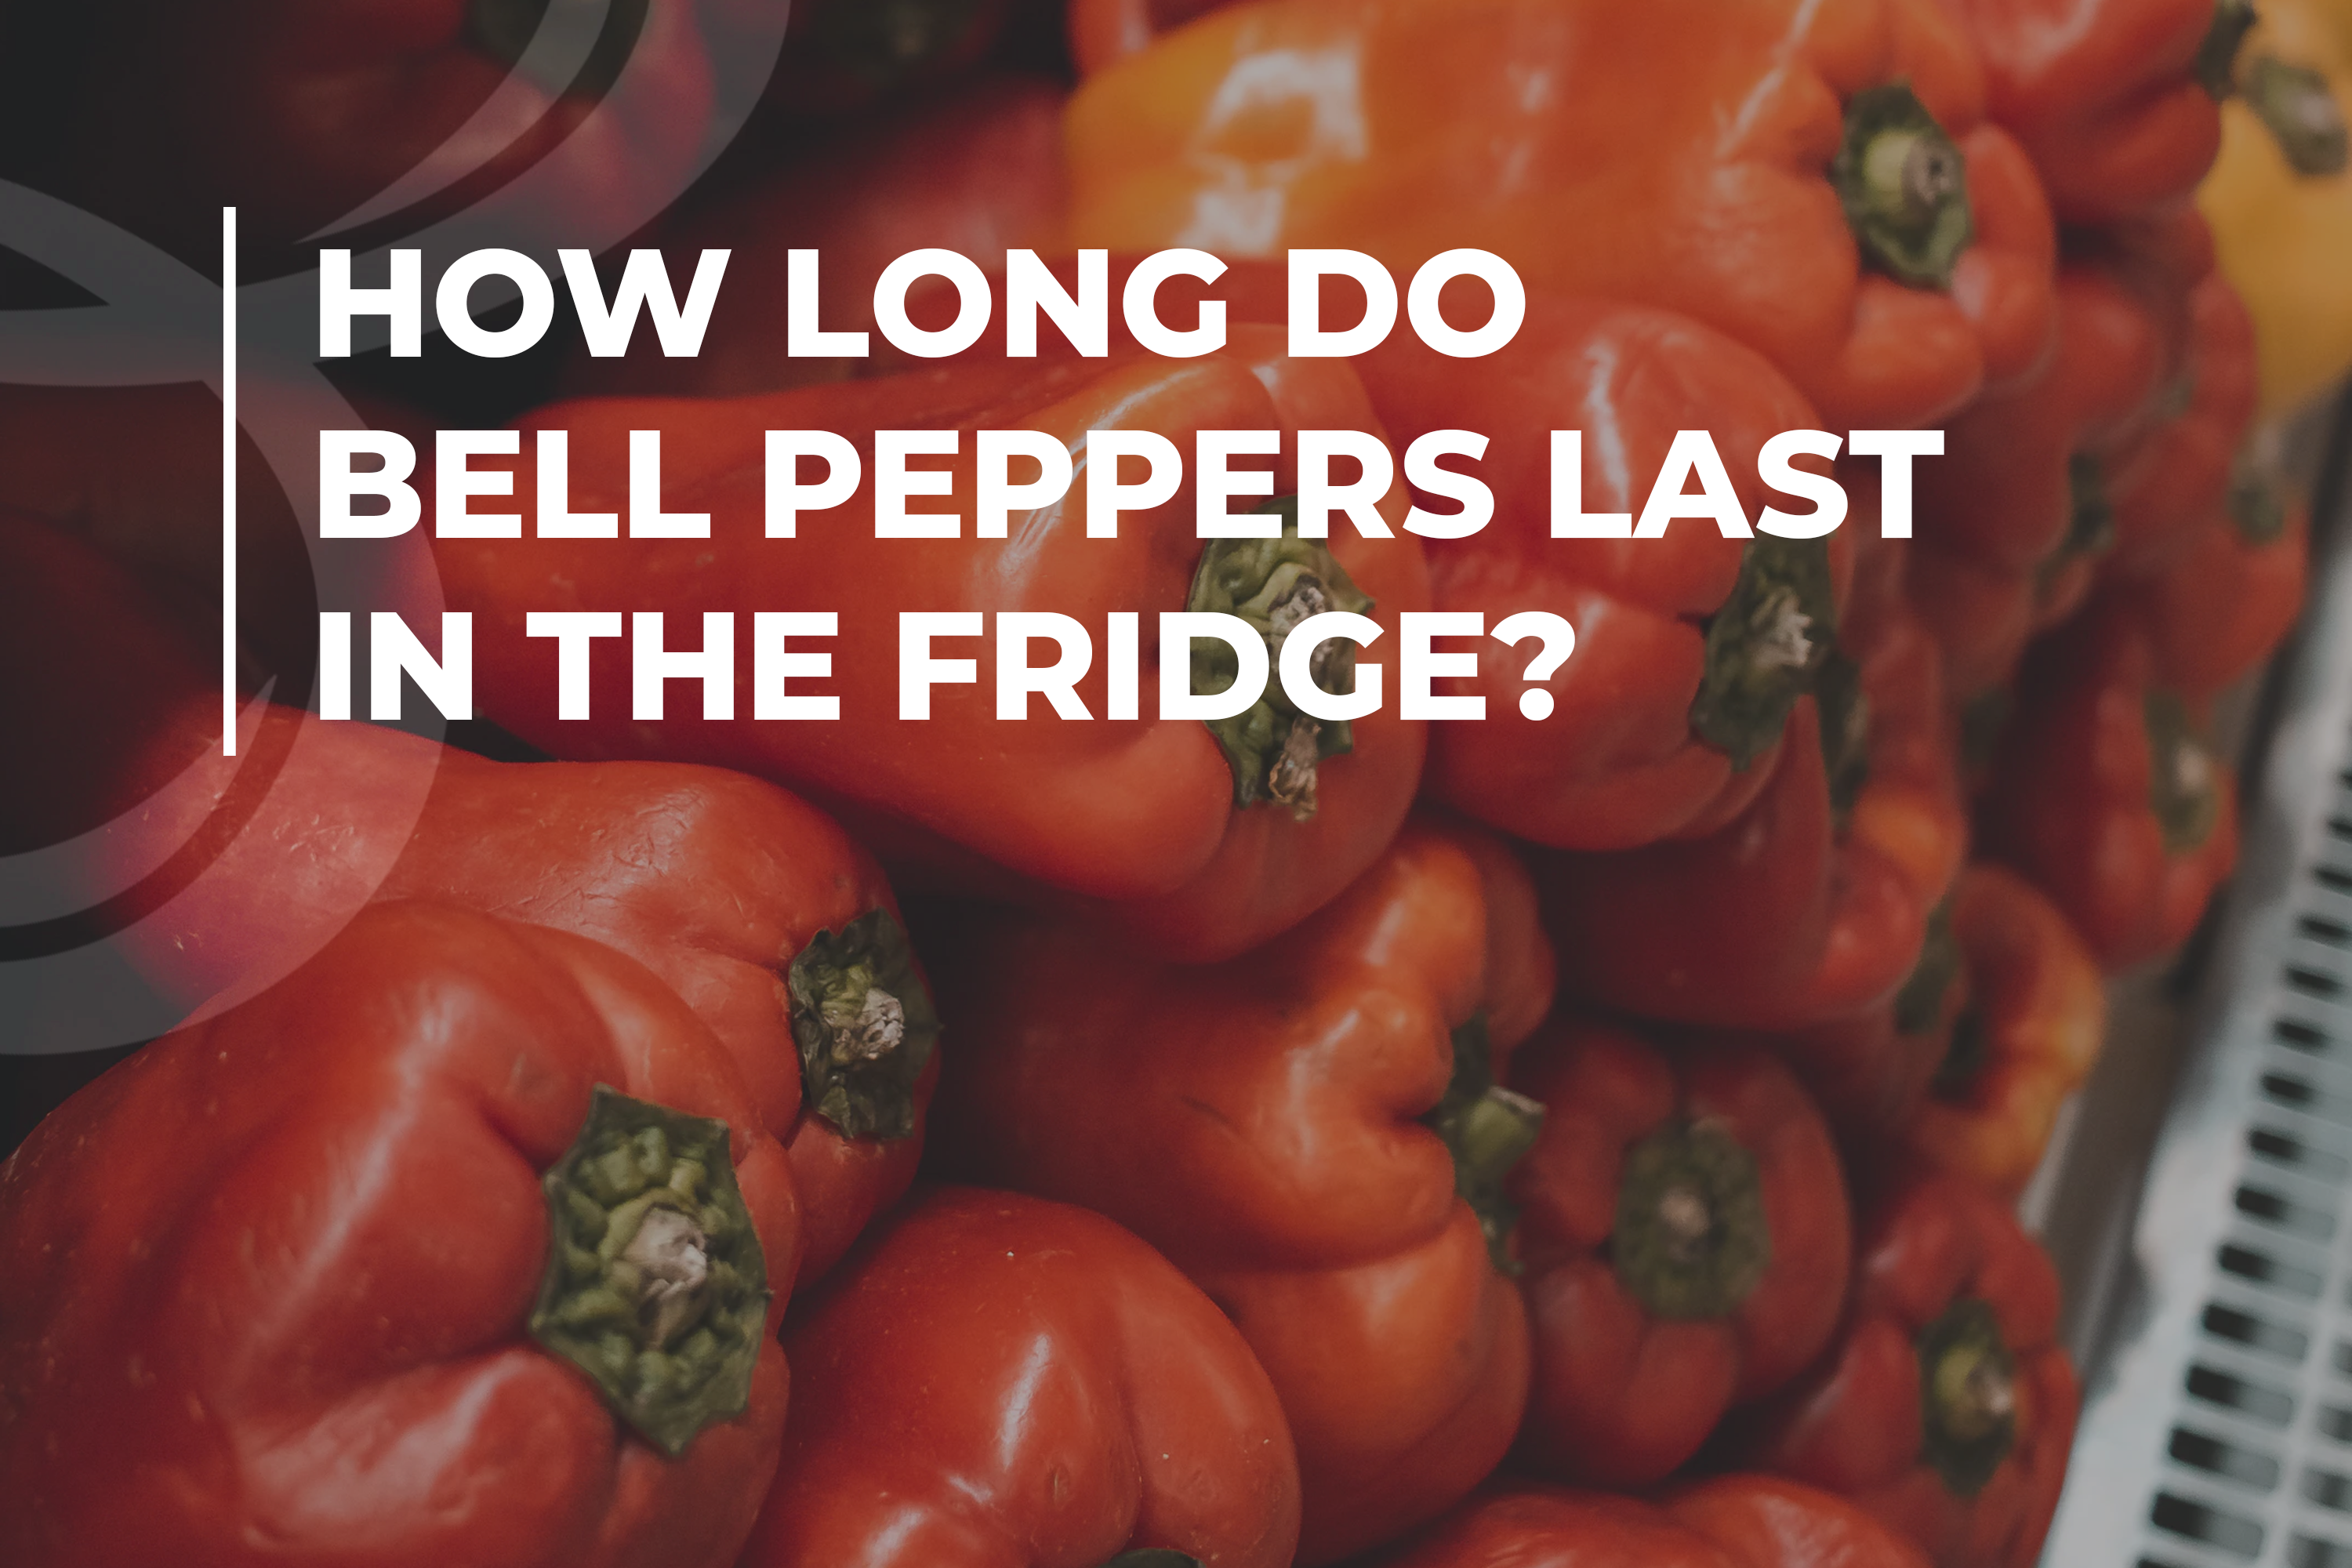 How long do bell peppers last in the fridge